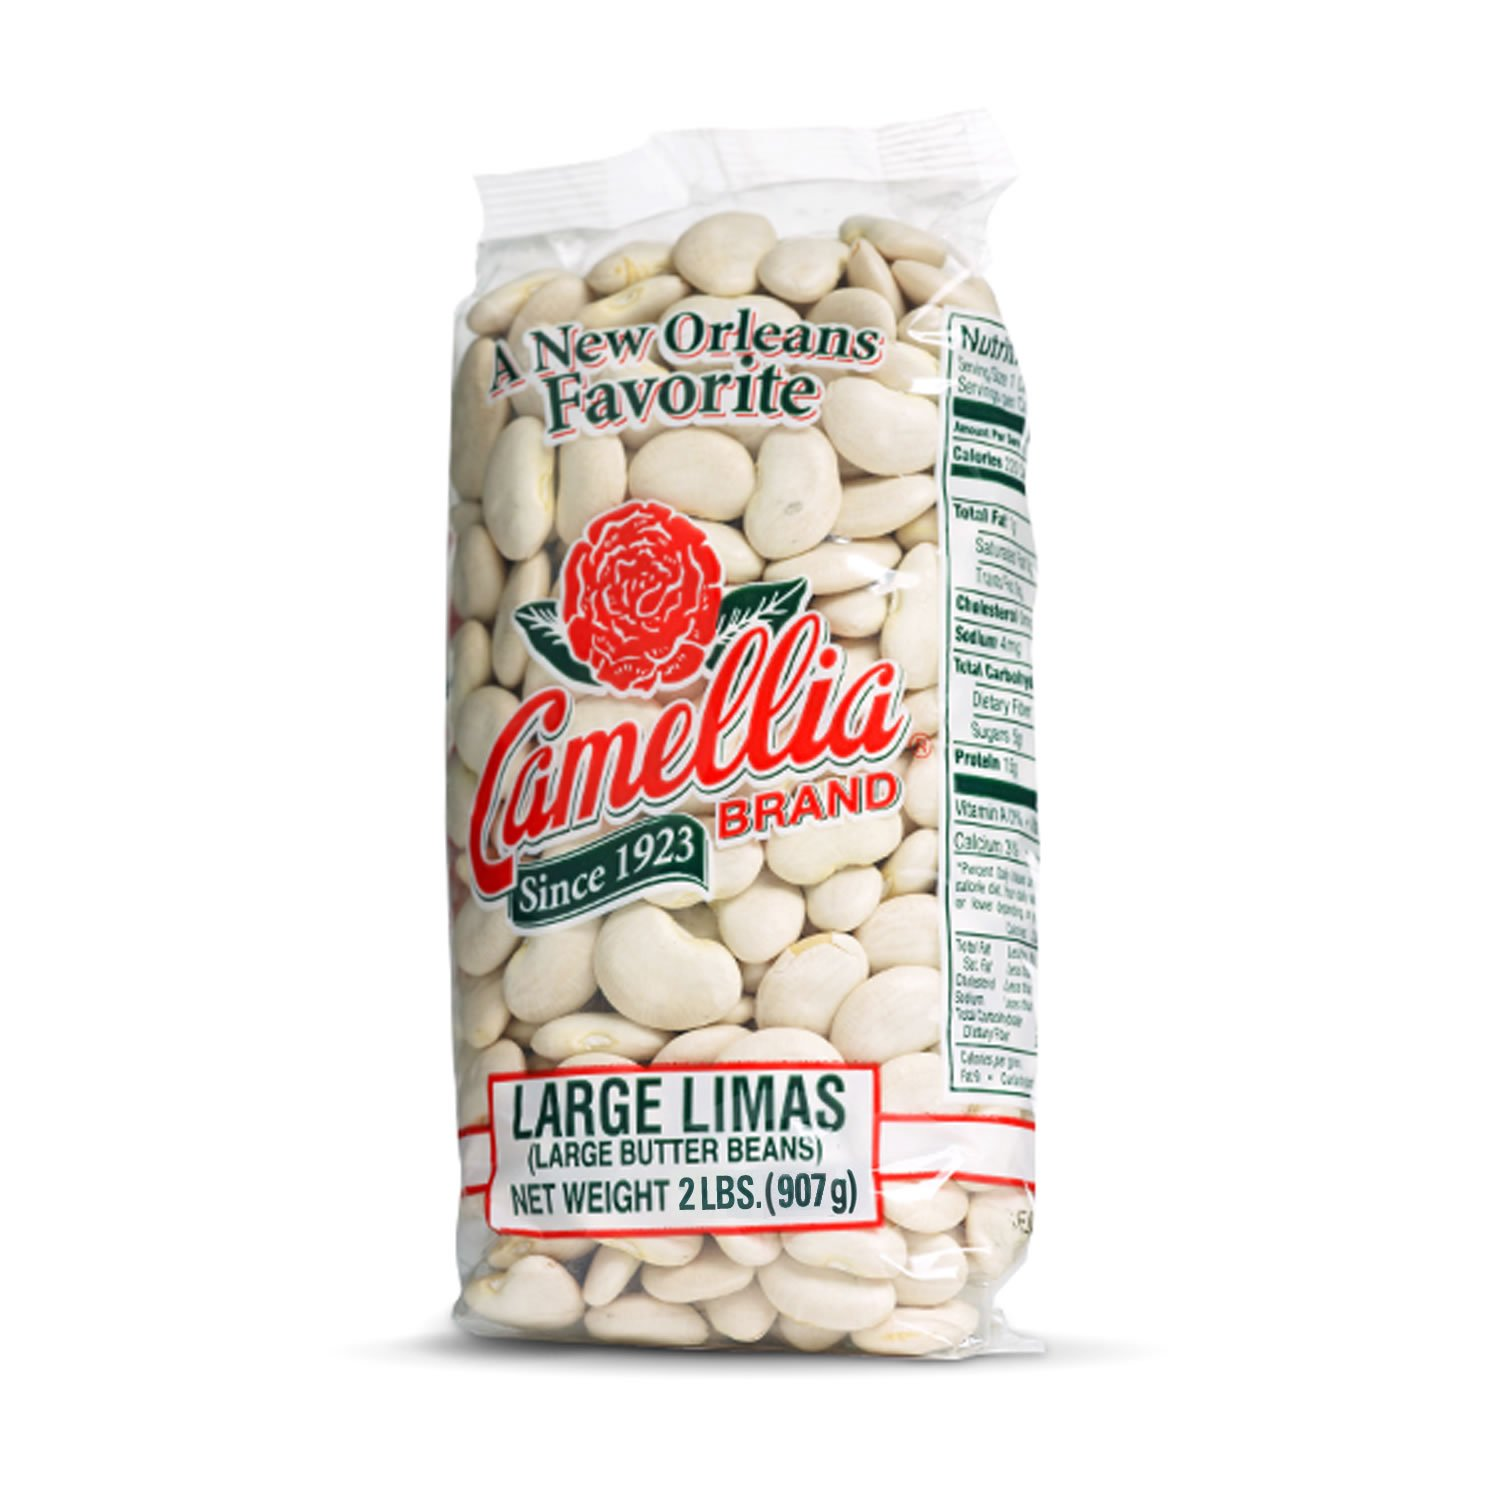 Camellia Brand Large Lima Beans 2 Pounds